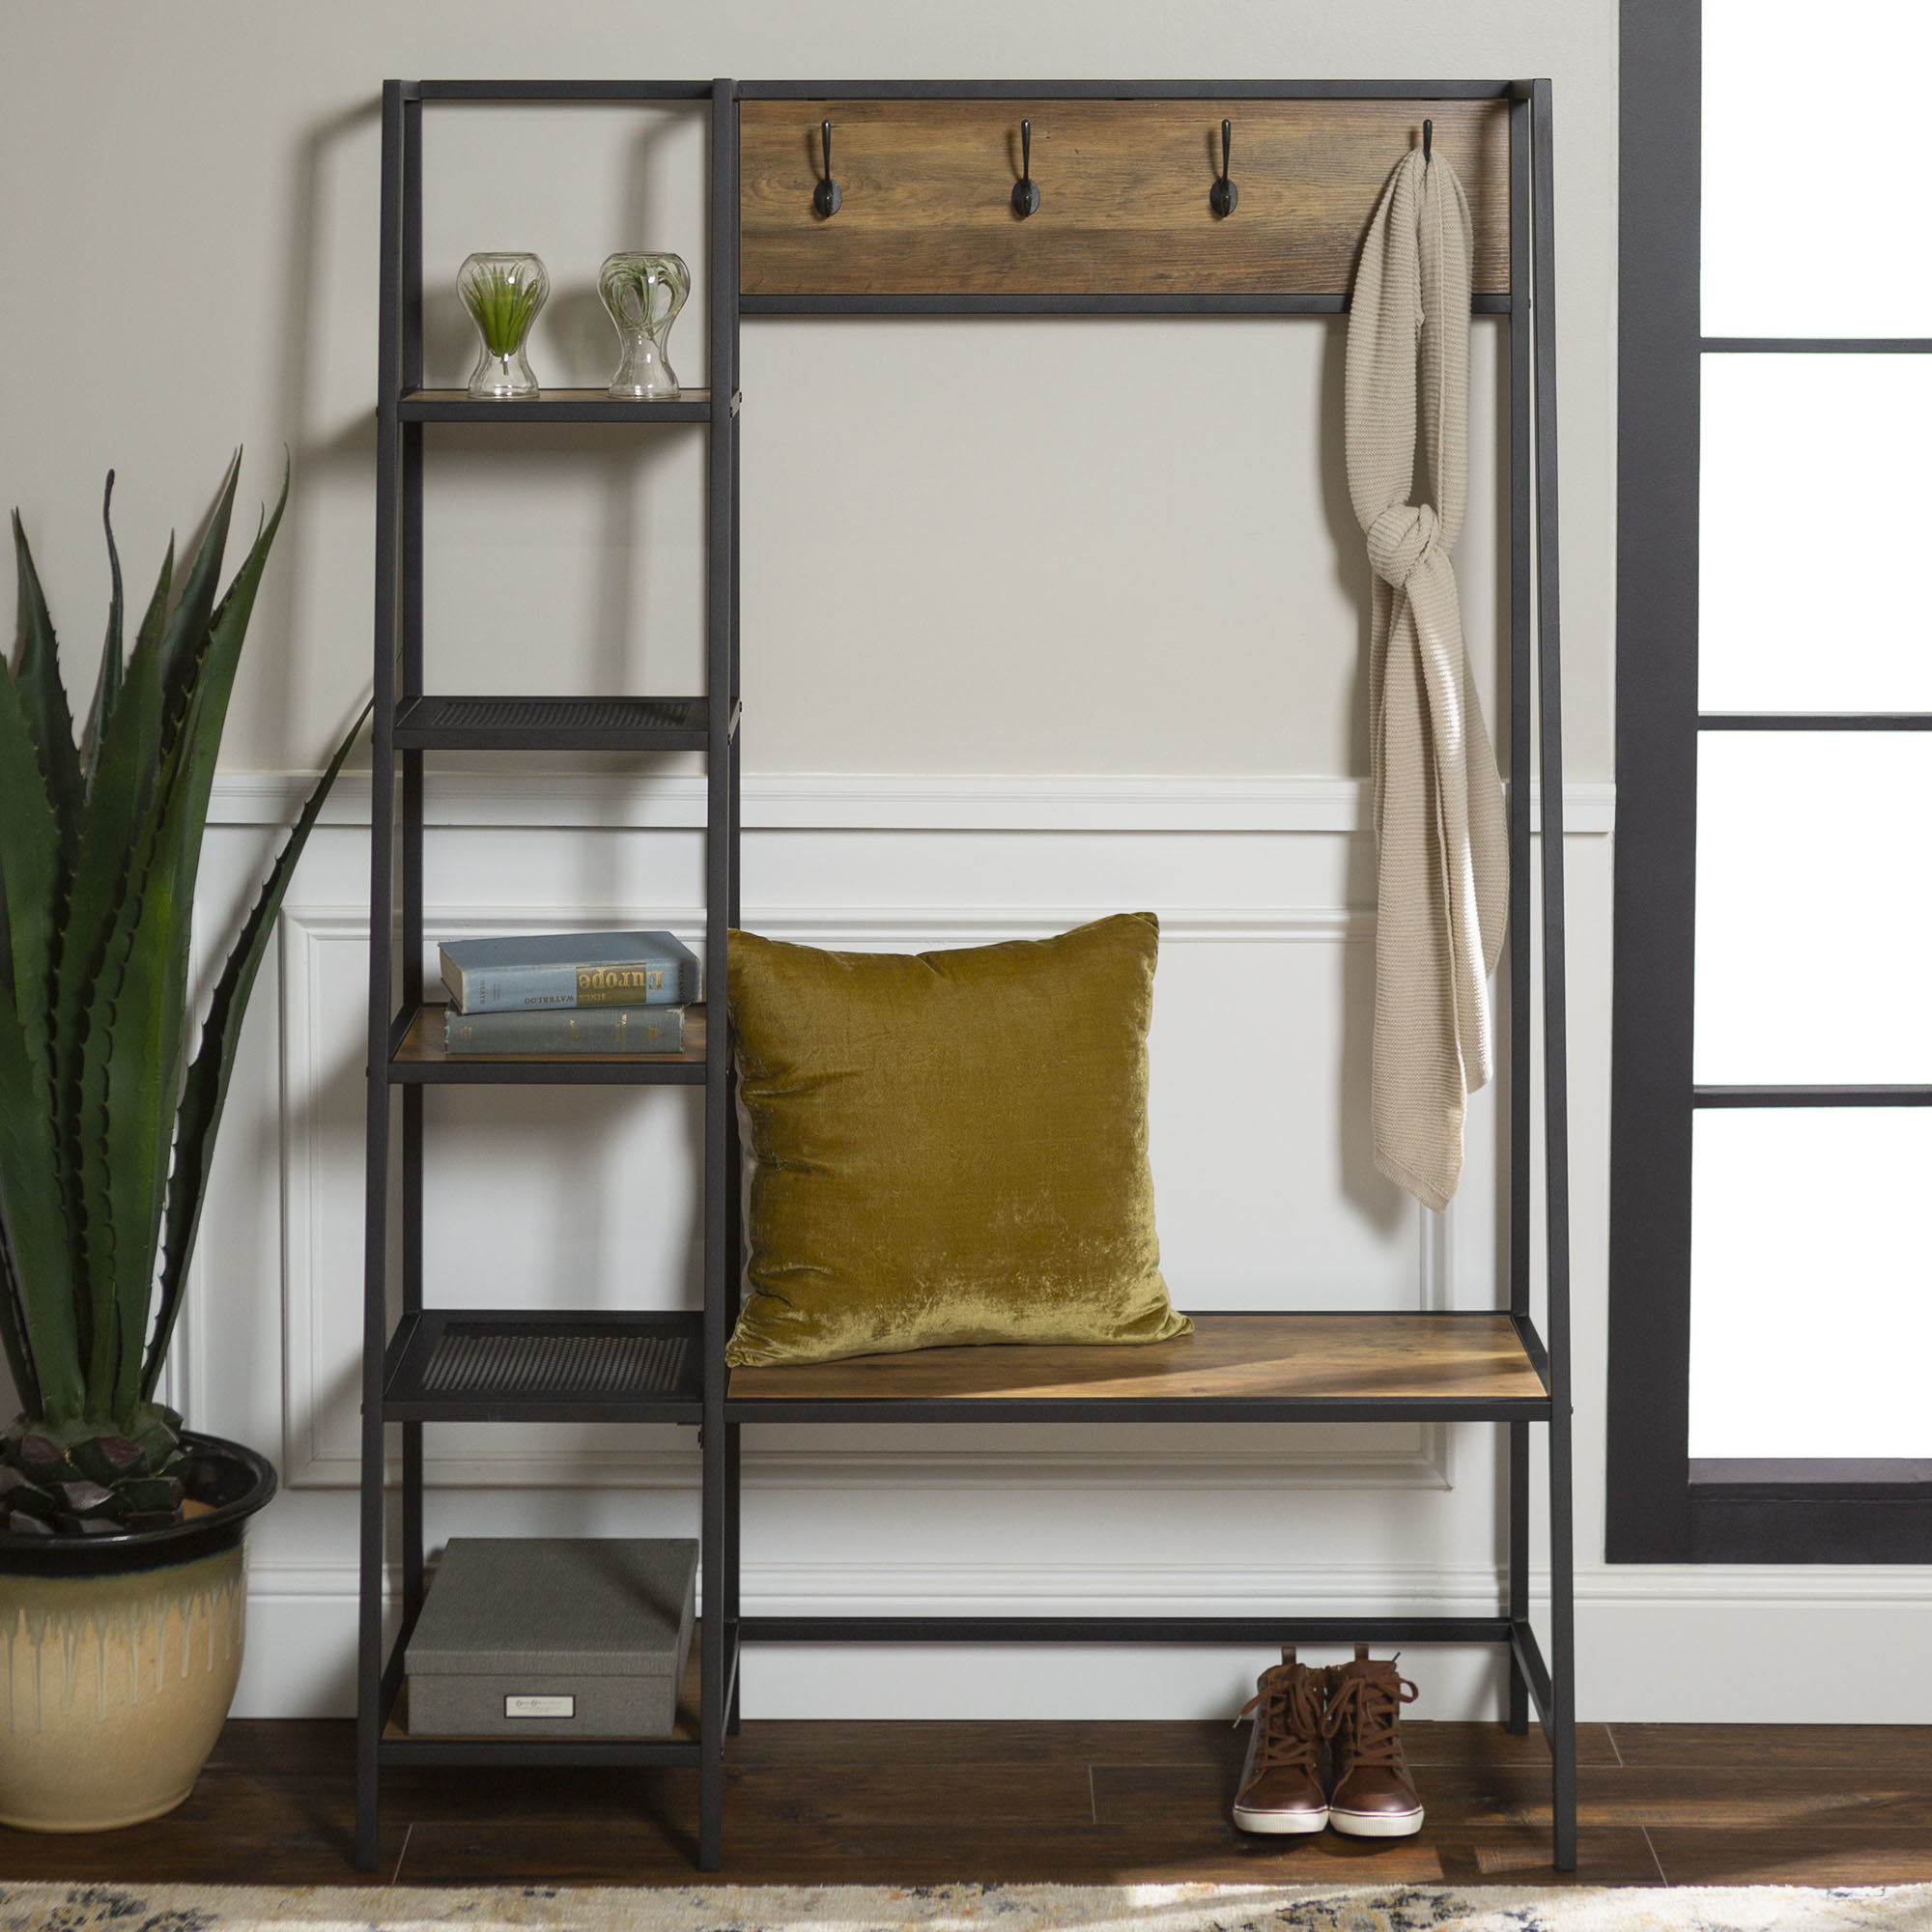 The black and brown hall tree with five side shelves, a coat rack, and small bench